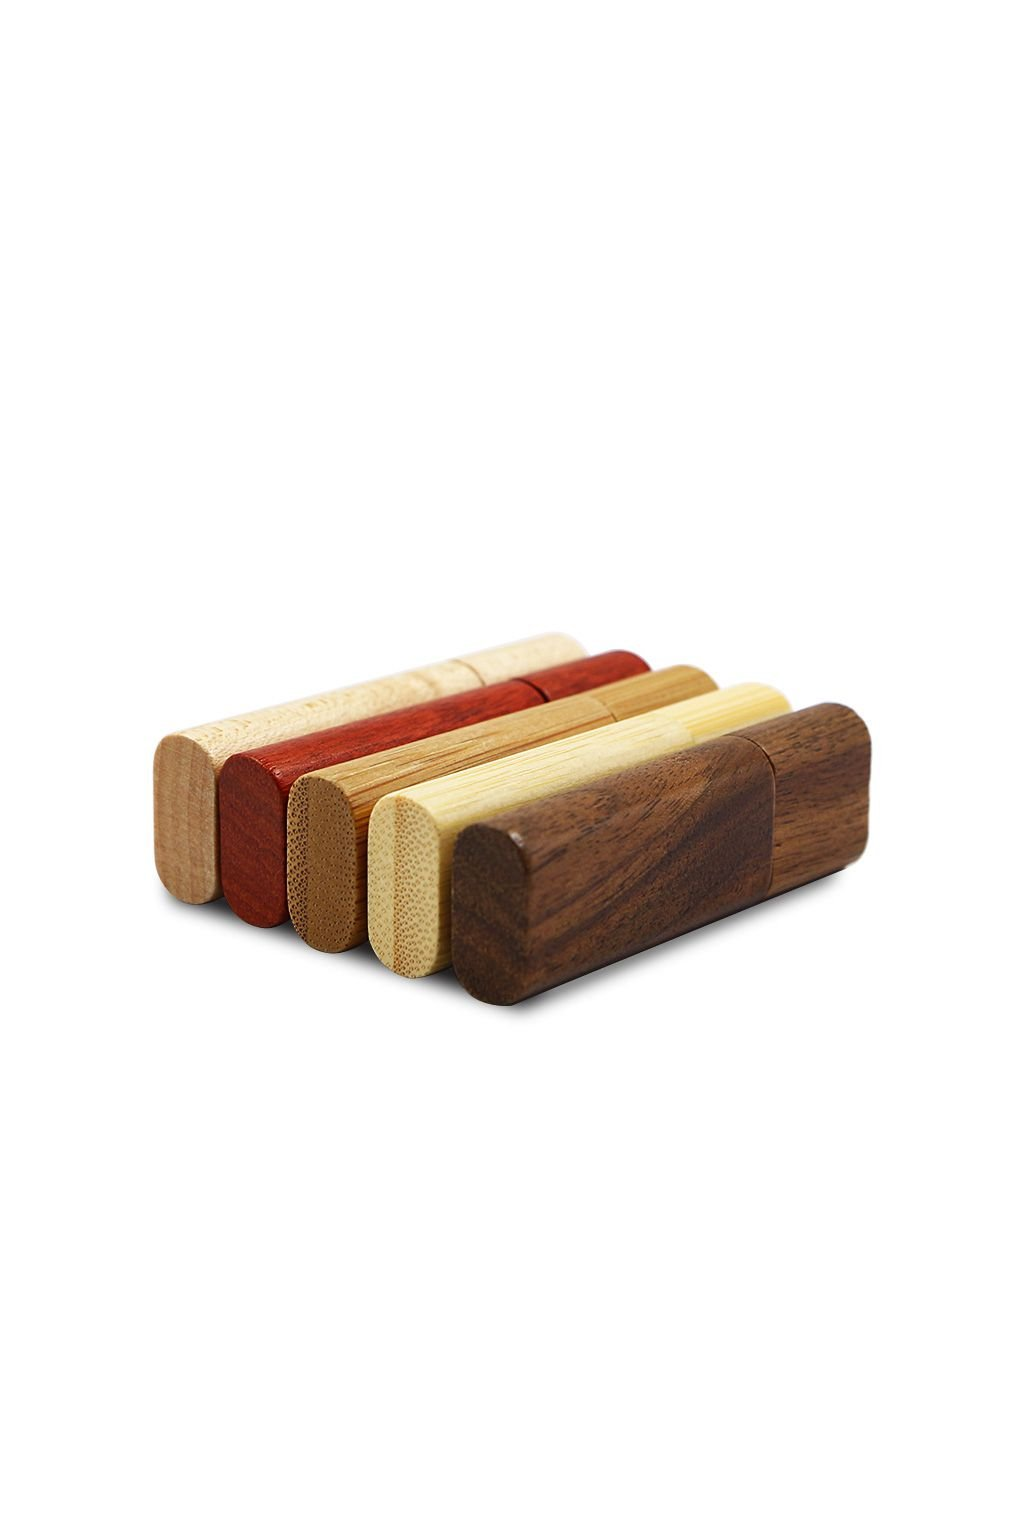 Customized Logo Creative Original Wooden Usb With